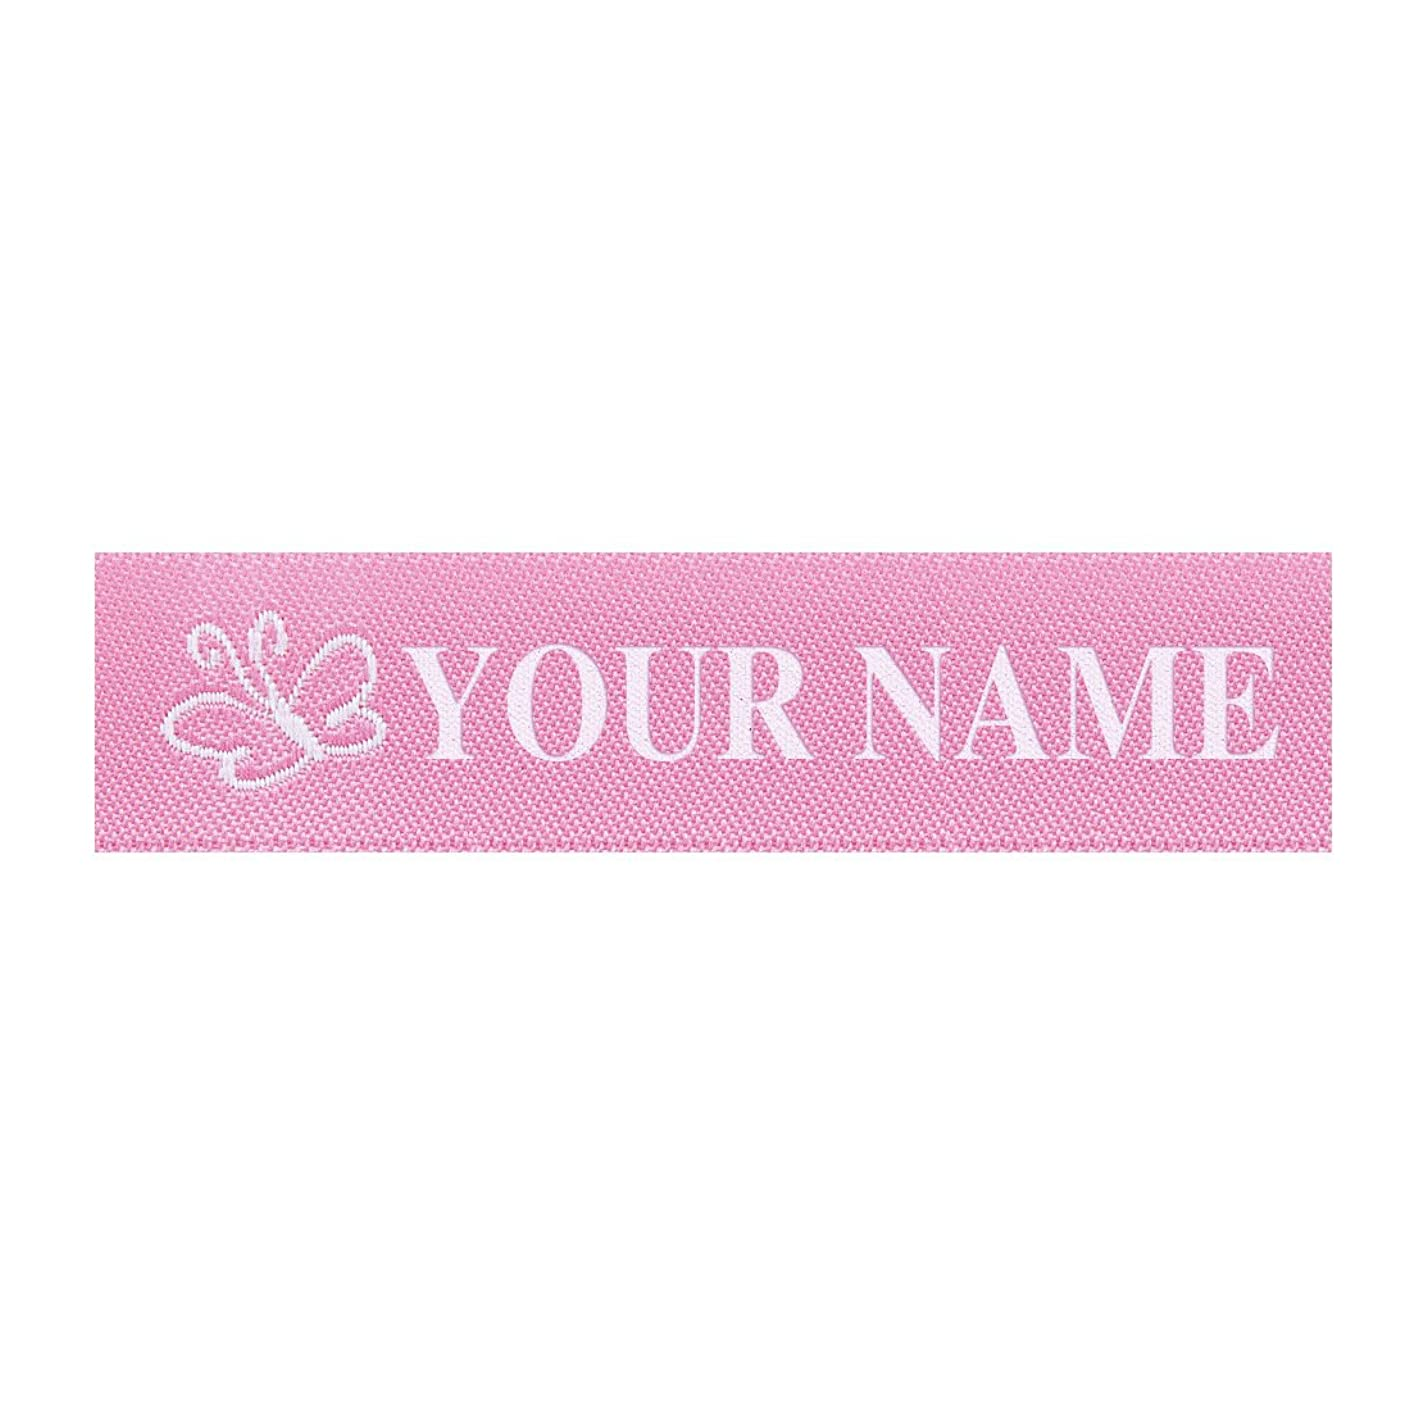 Wunderlabel Standard Woven Label Women Girls Name Tag Aubrey Iron on Art Craft Ribbon Ribbons Decorative Tags on Clothes Clothing Garment Fabric Material Embroidered Labels Tags, White on Pink, 25 qty